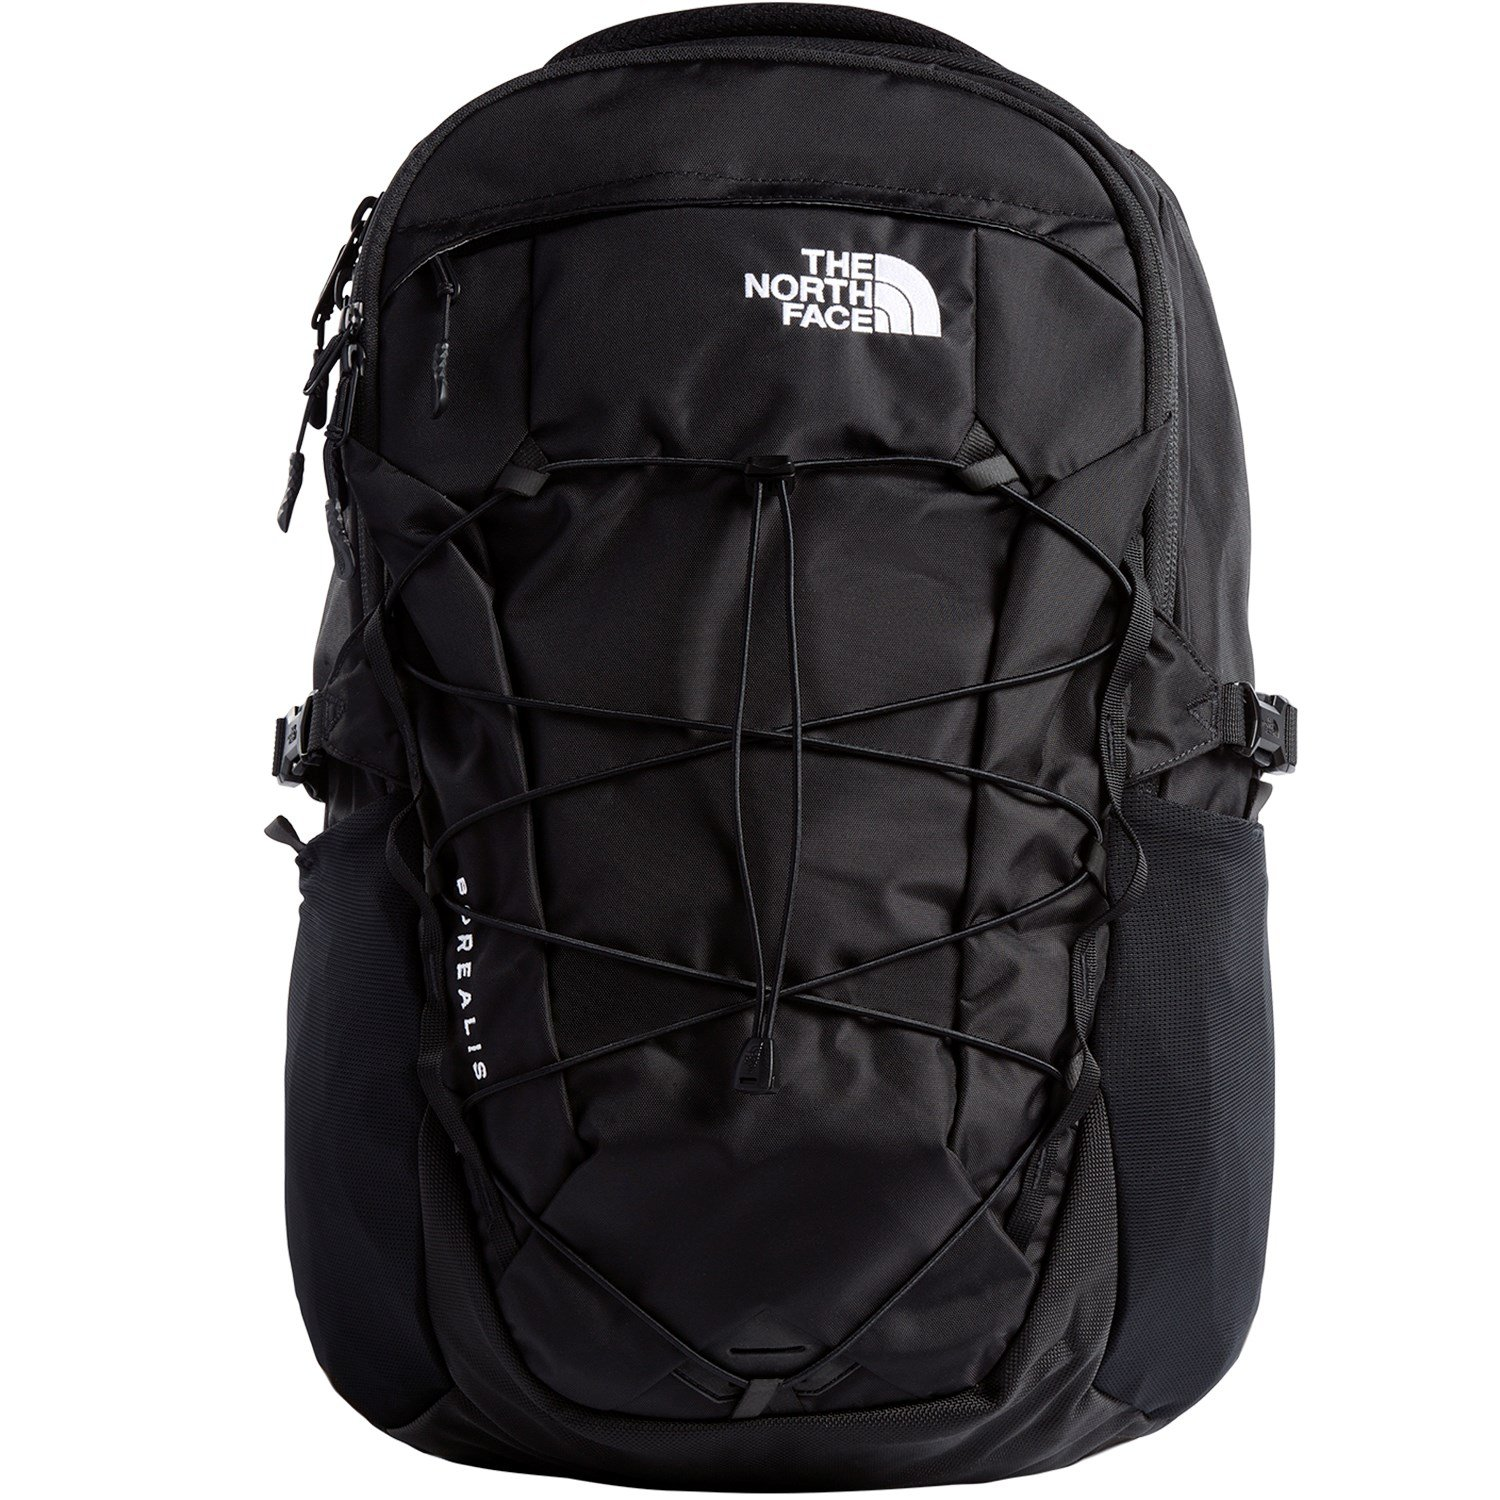 97627ae75 The North Face Borealis Backpack